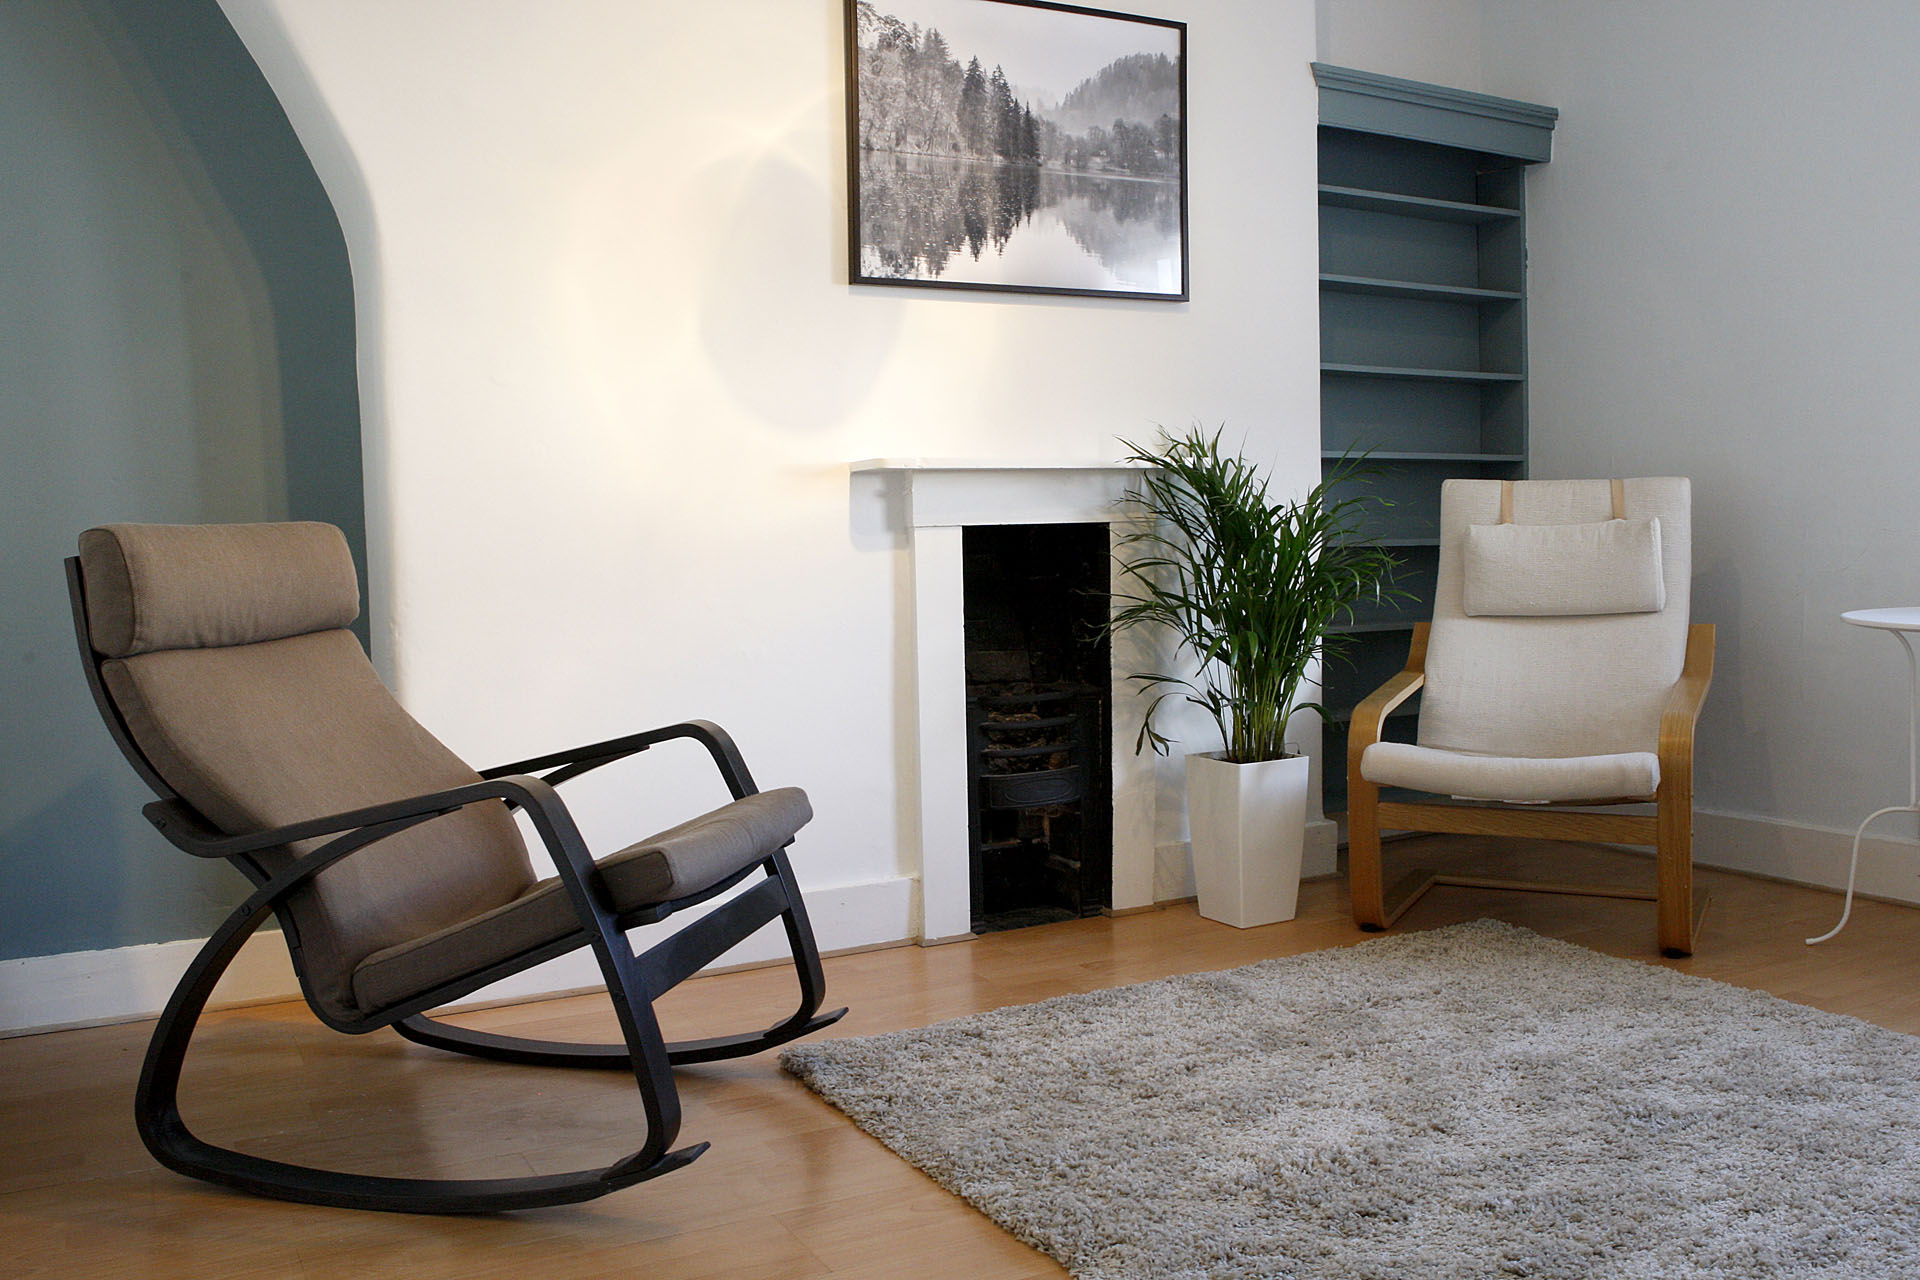 Therapy Rooms To Rent In Leamington Spa